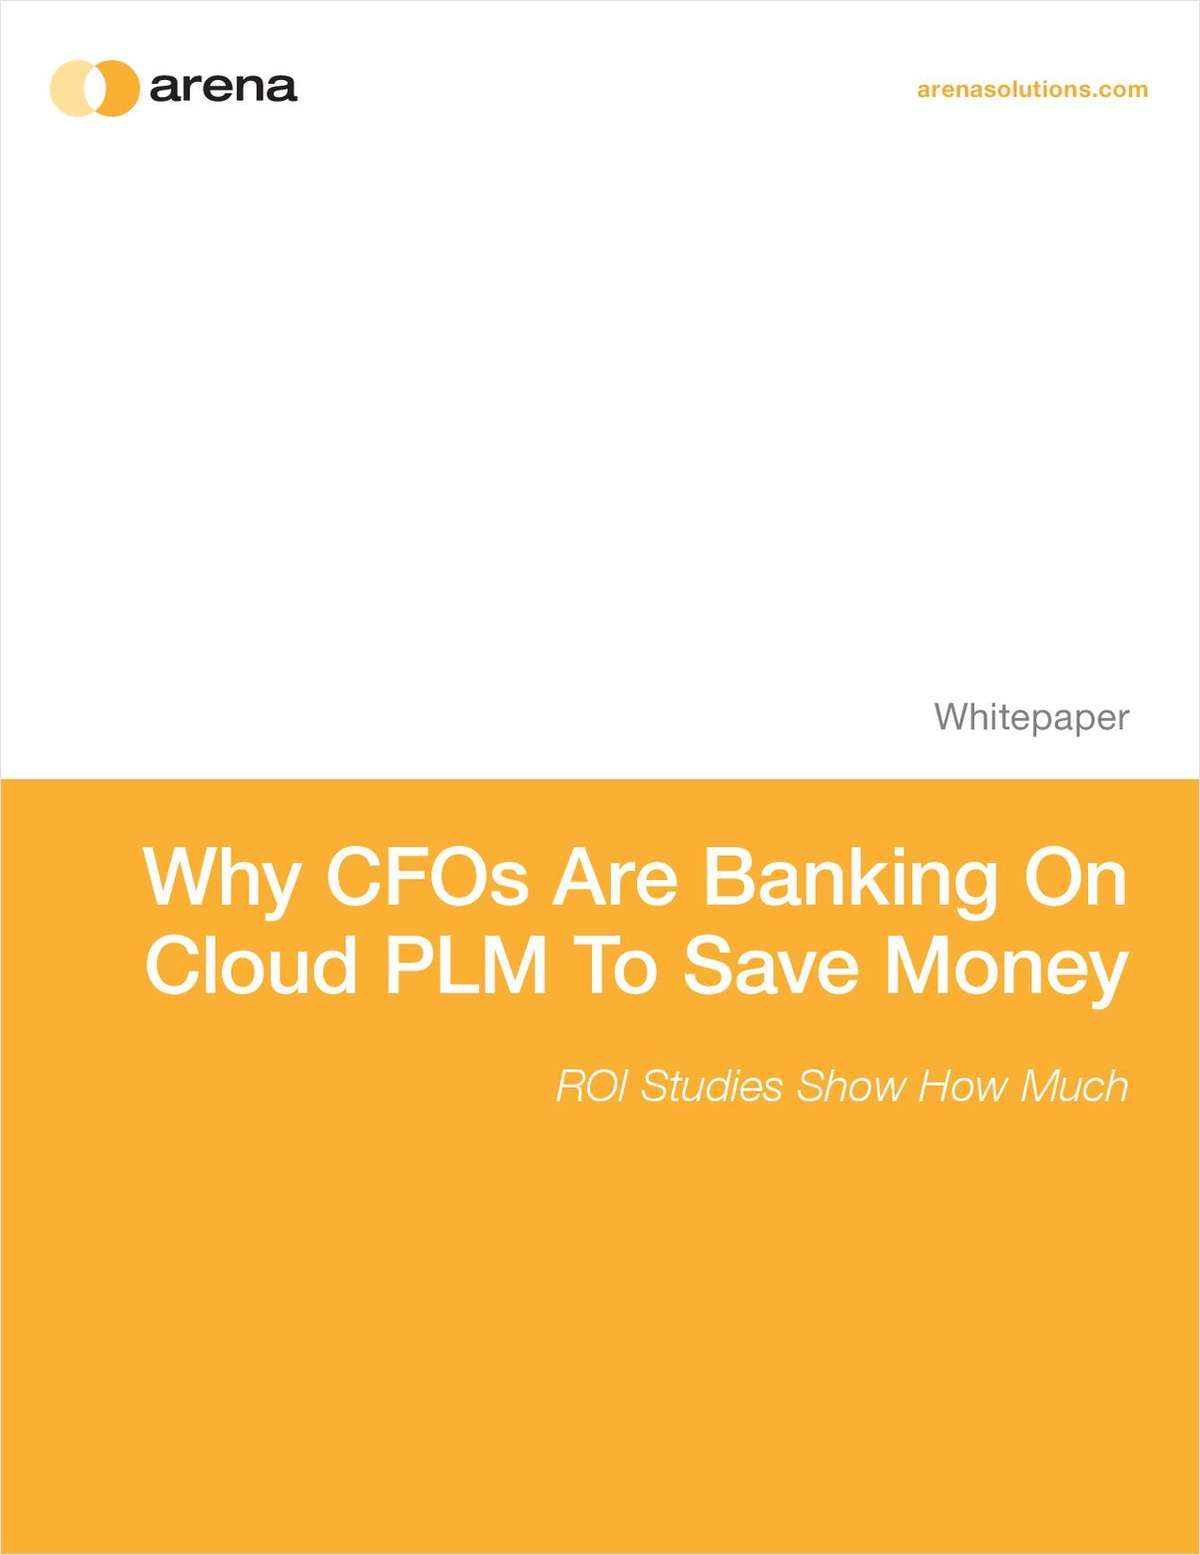 Why More CFOs Are Banking on Cloud-base PLM